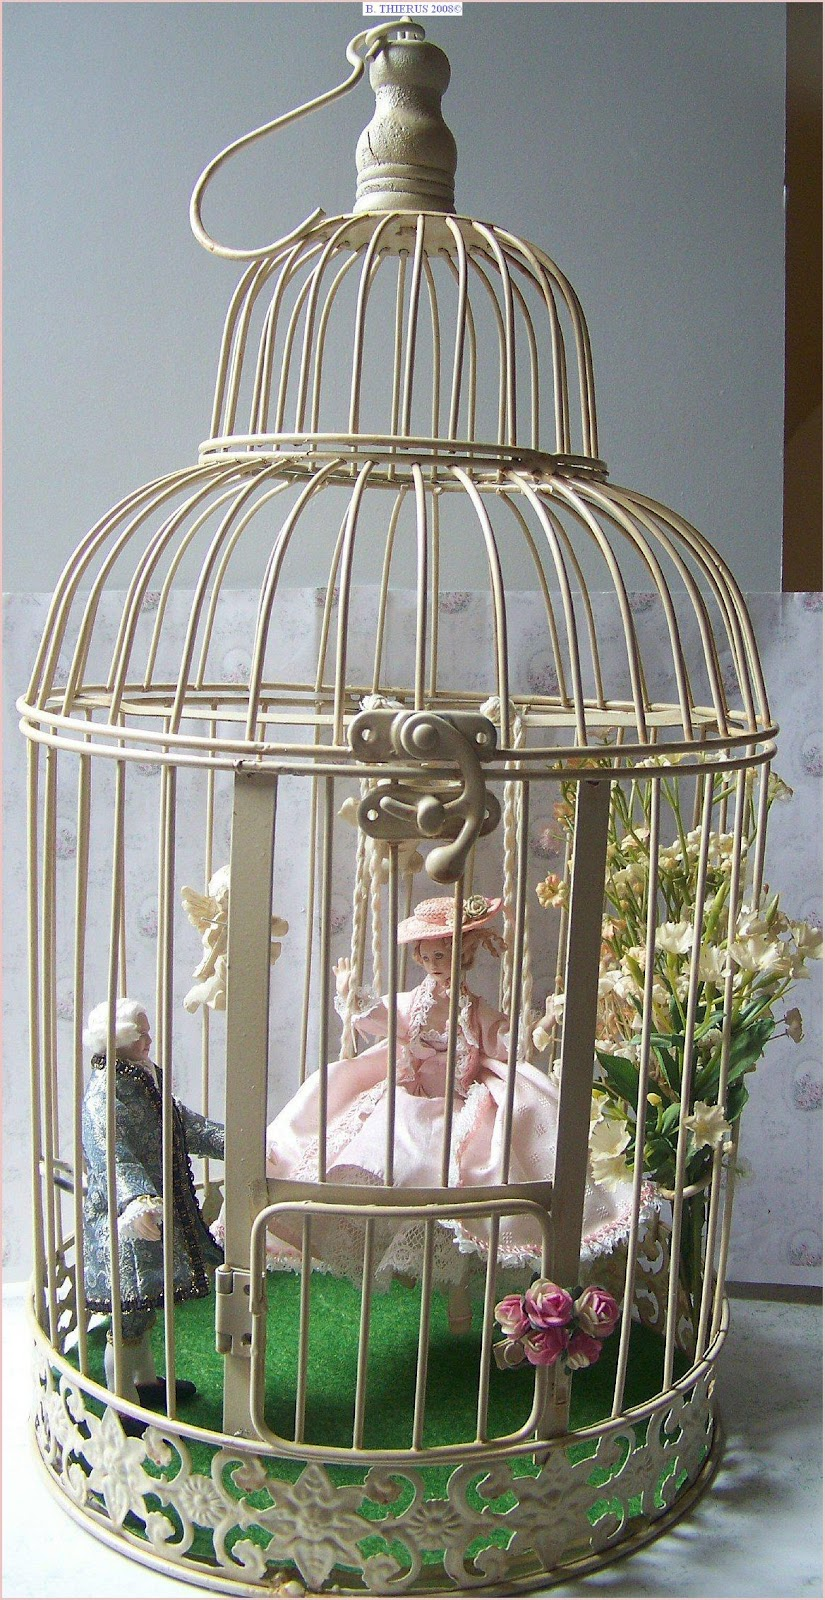 1000 images about shabby bird houses and cages on pinterest birdcages bird cages and birdhouses. Black Bedroom Furniture Sets. Home Design Ideas